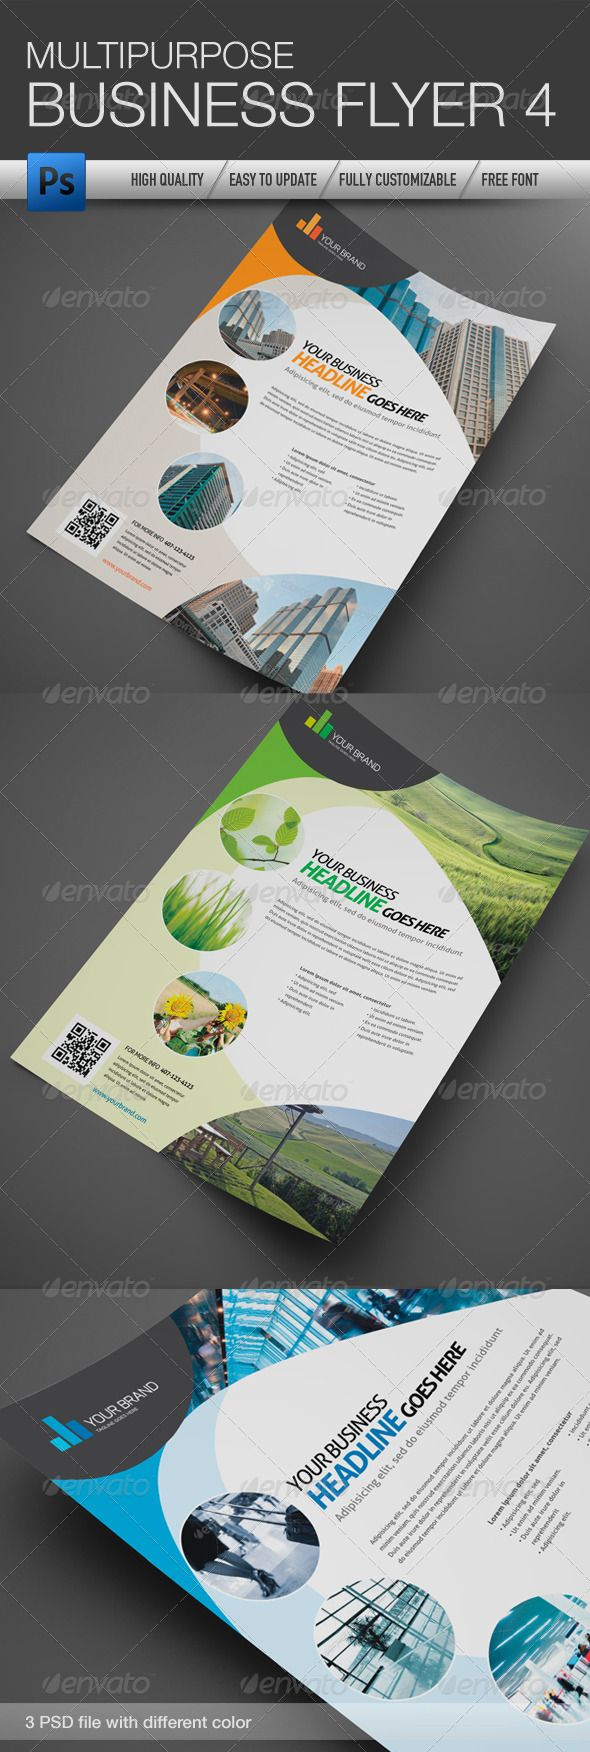 11 Best Housecleaning Flyer Ideas And Templates Images On